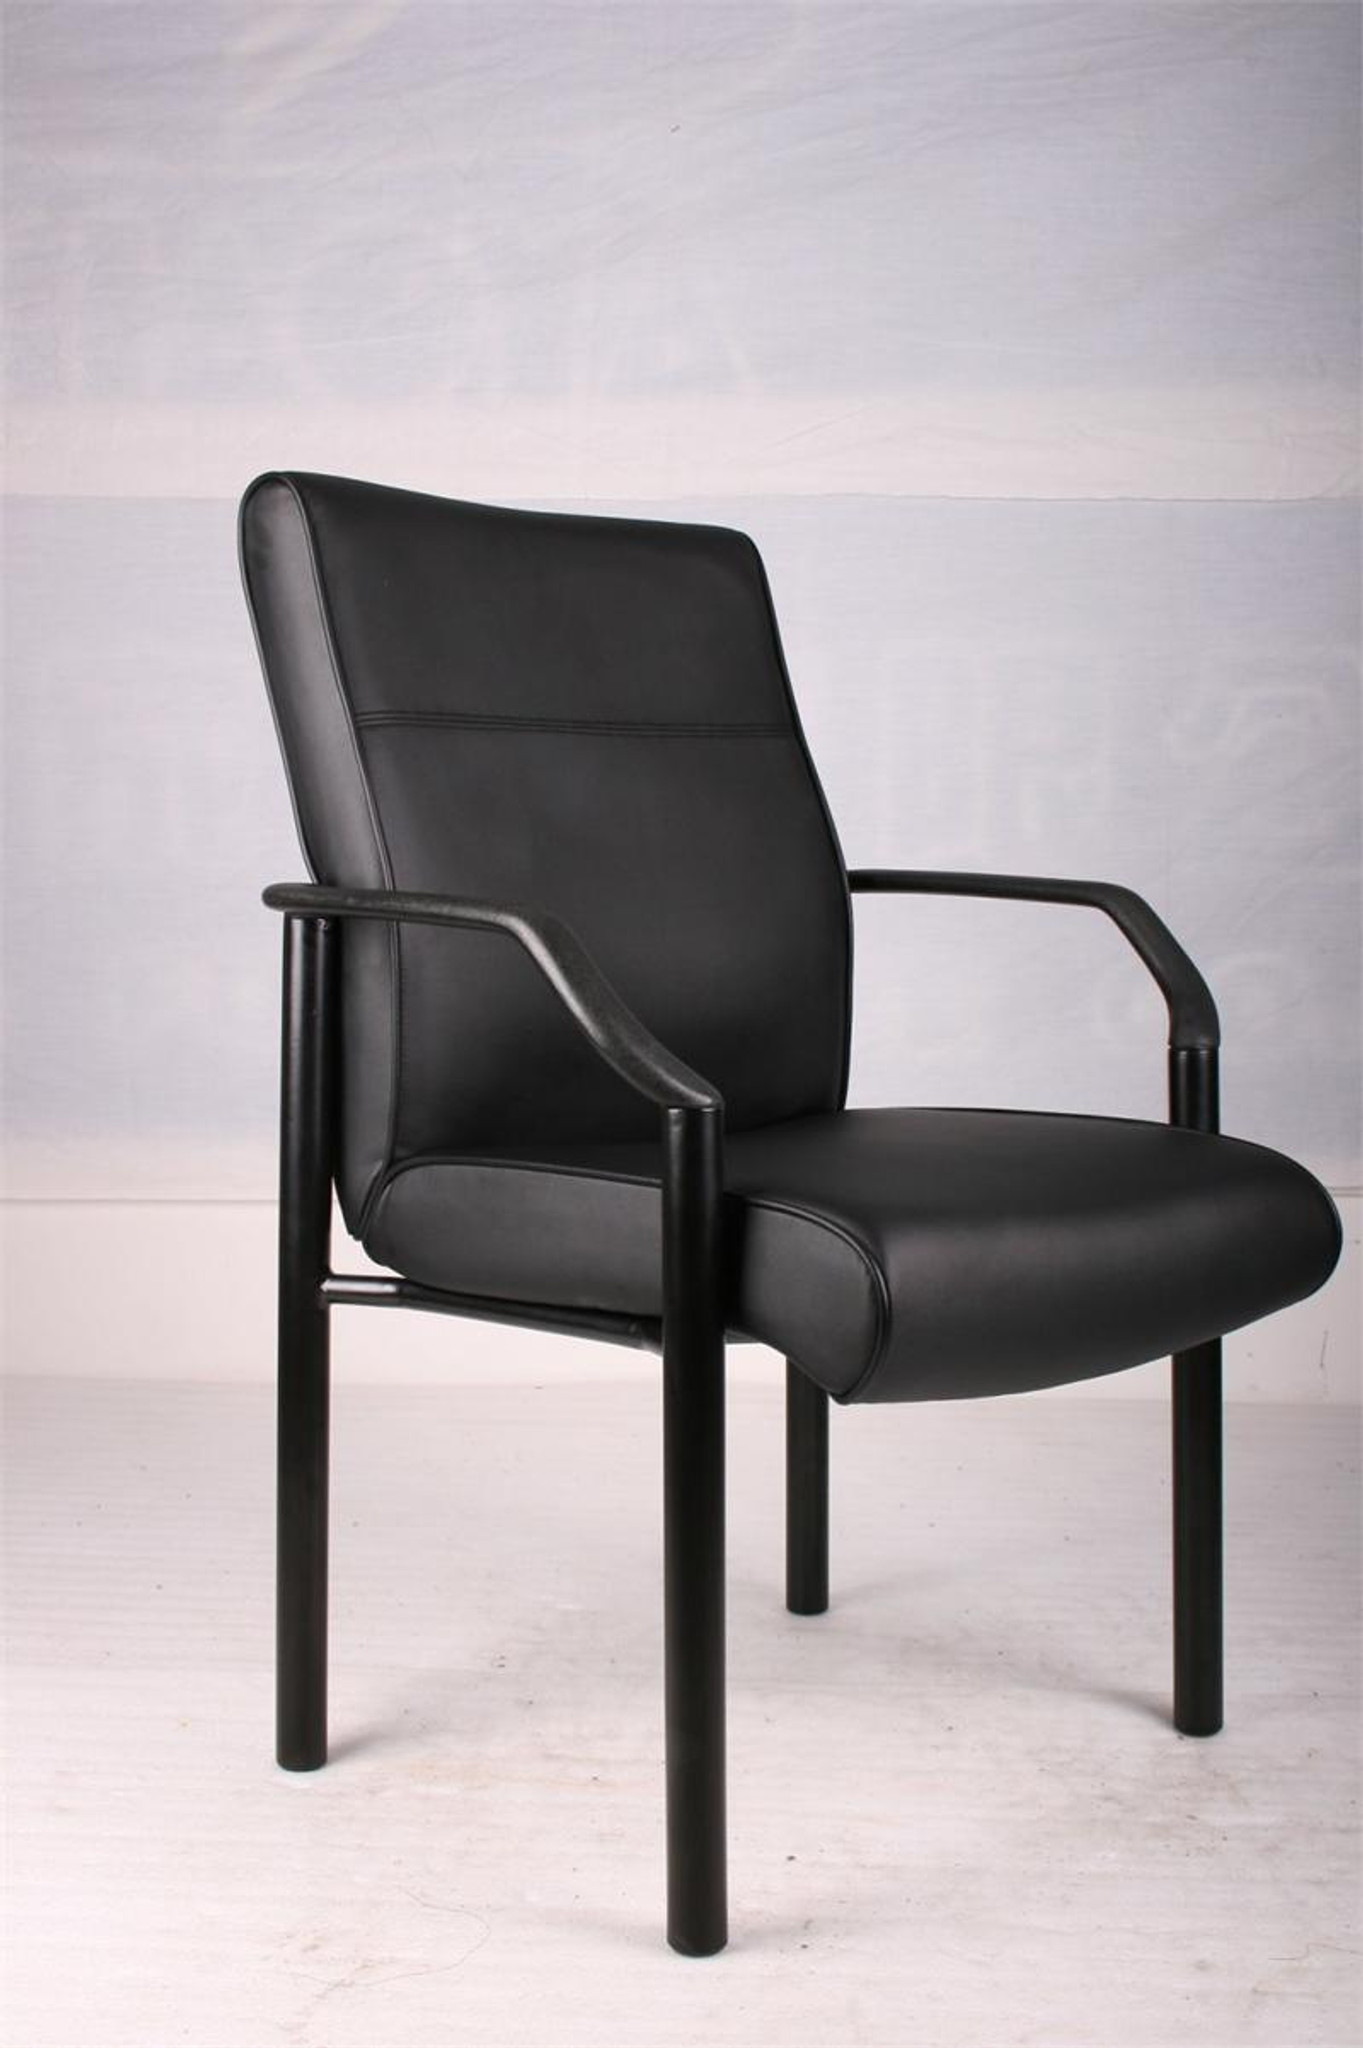 office side chair amazon com chairs boss products metal 4 legs in leather plus